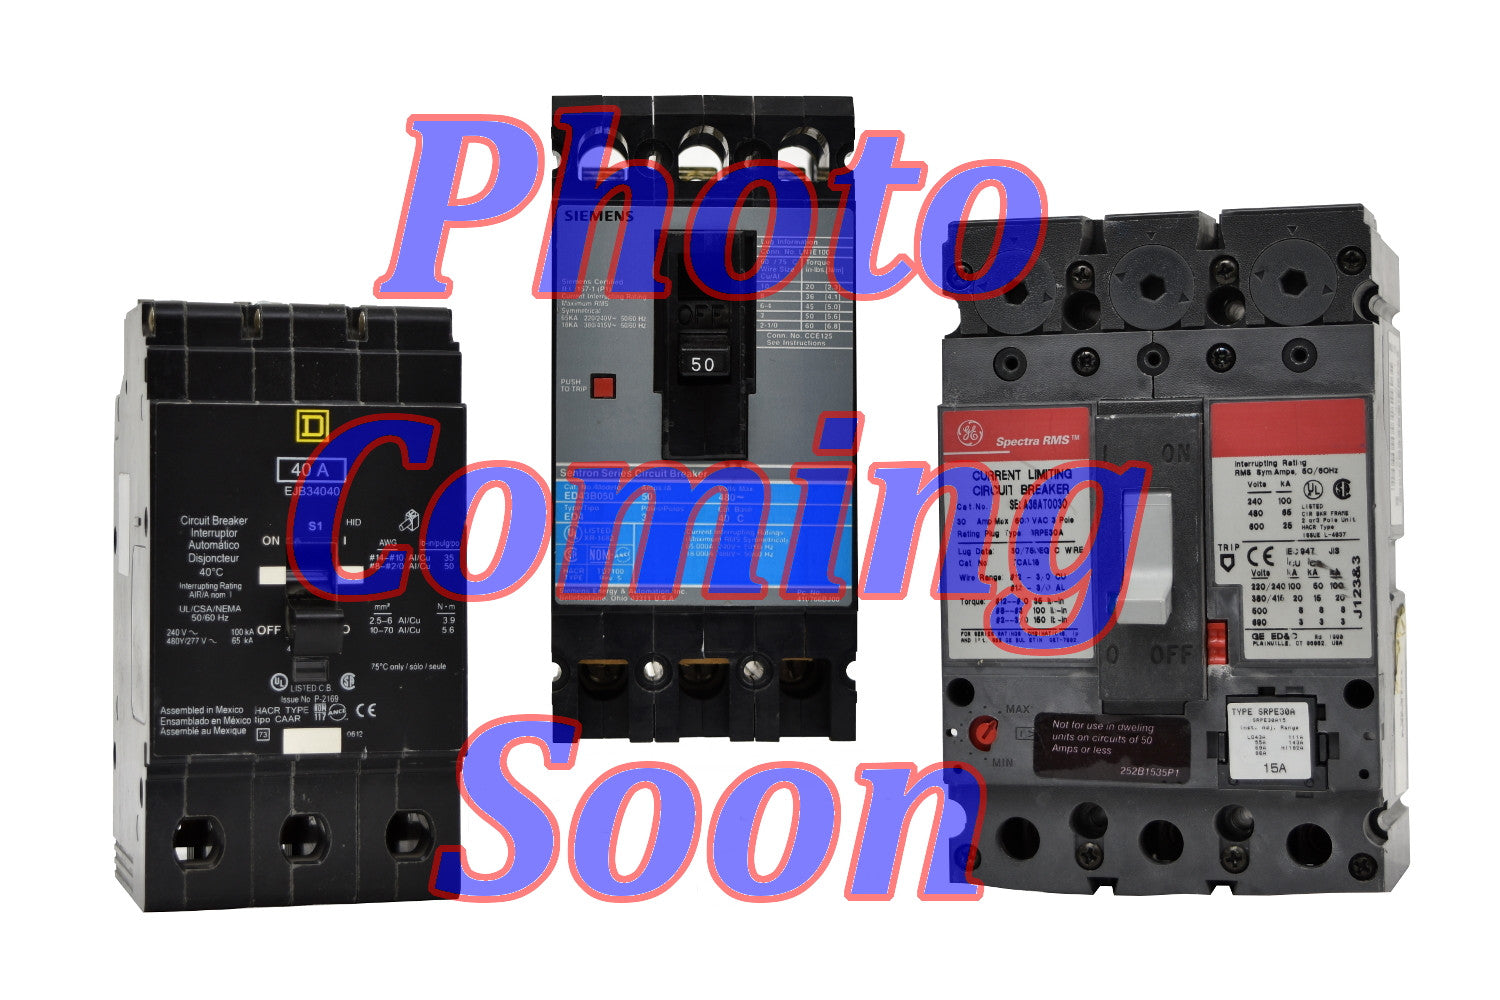 Square D A1B1100 Circuit Breakers